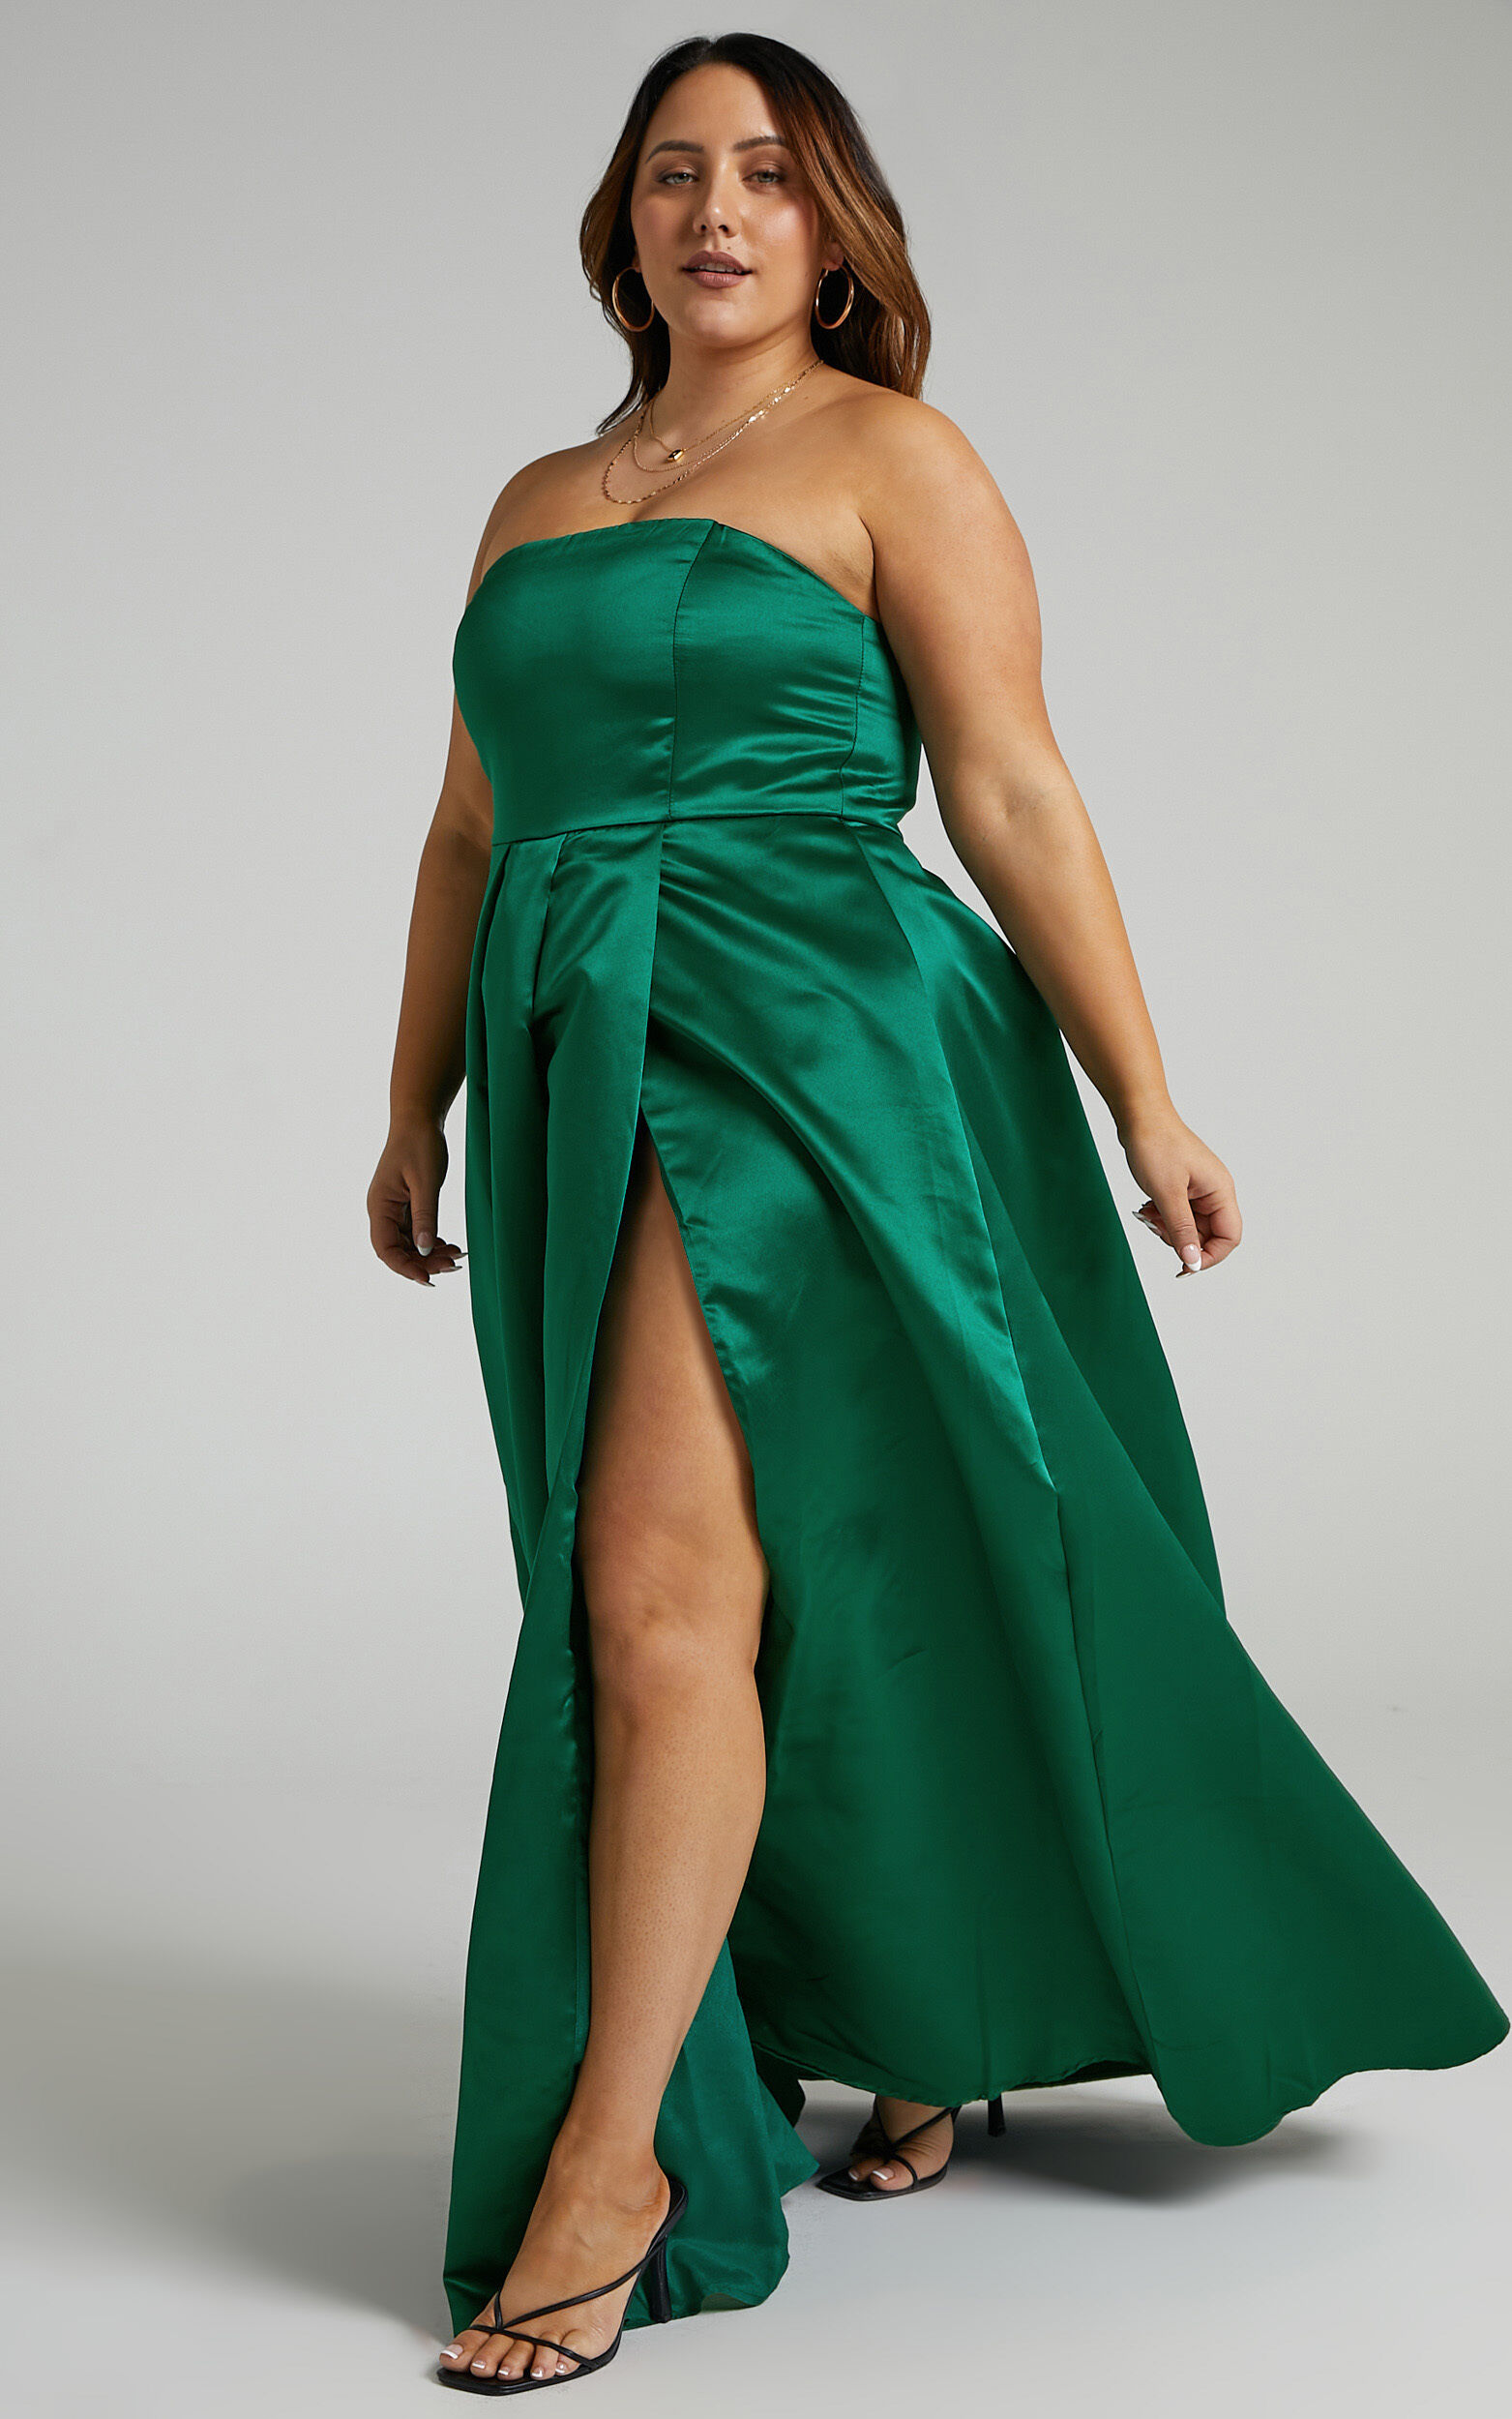 Queen Of The Show Strapless Maxi Dress in Emerald Satin - 04, GRN1, super-hi-res image number null